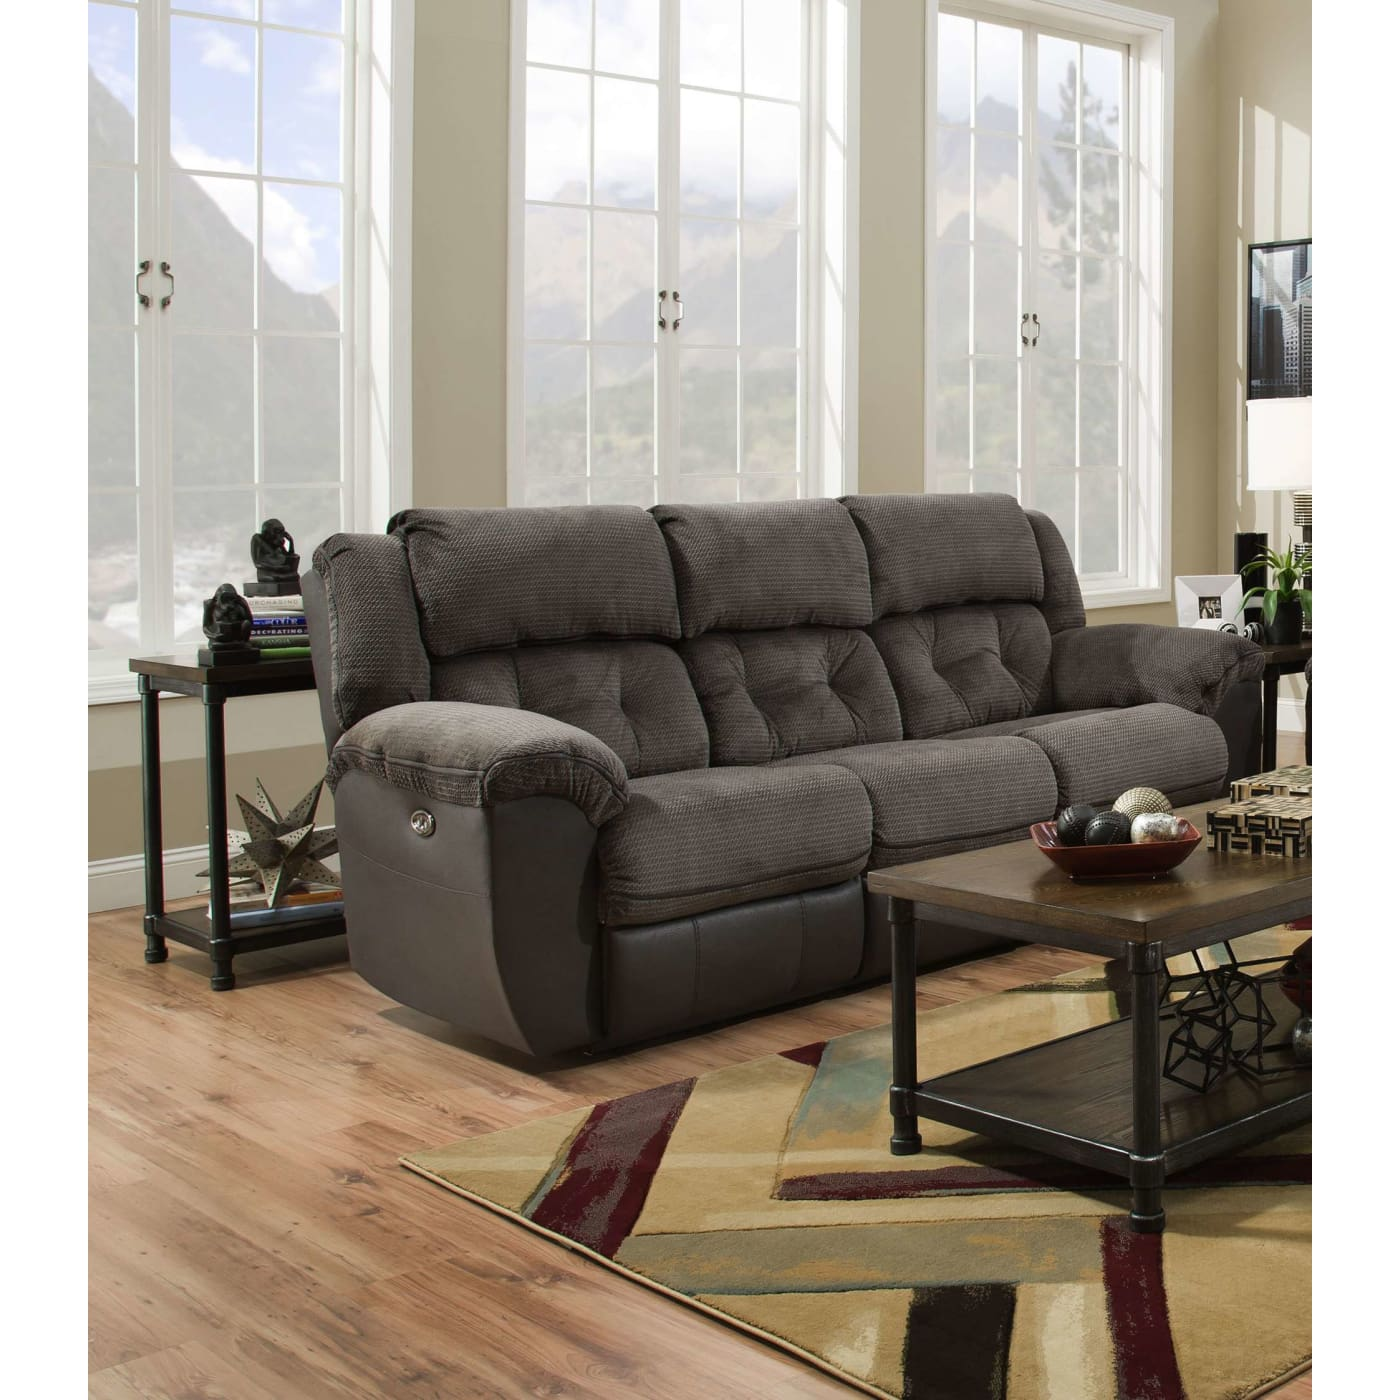 Genial Beale Grey Double Motion Sofa. Simmons 50446BR 53 Beale Gry ...